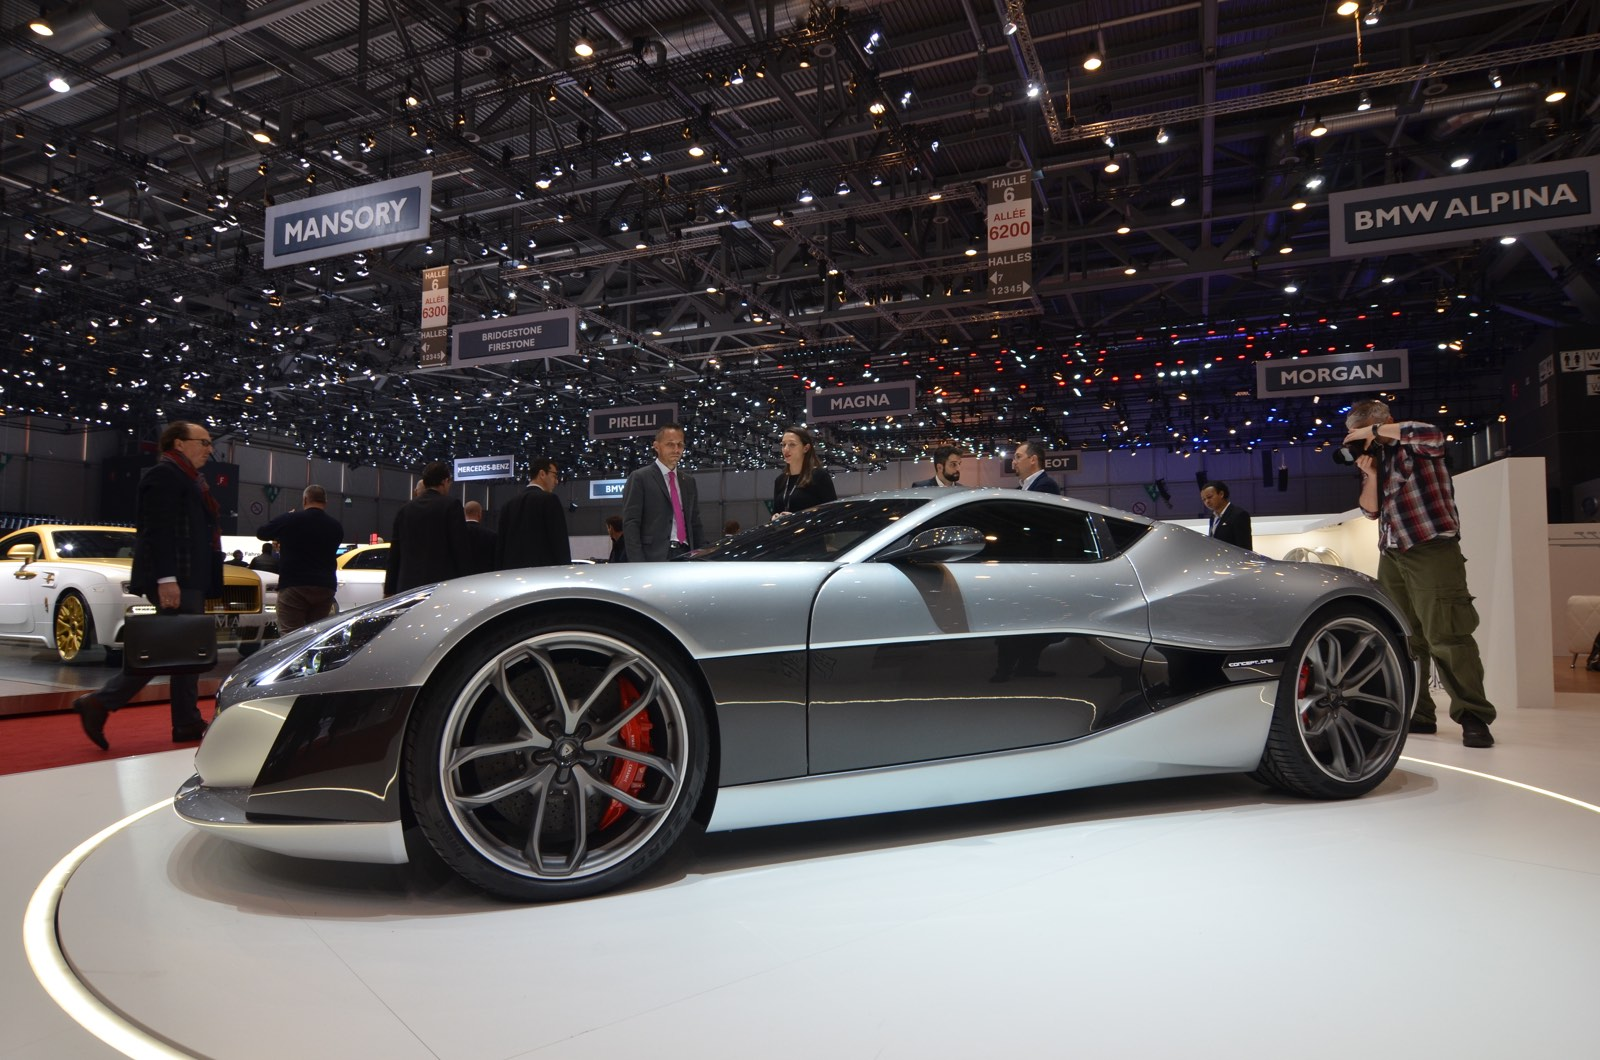 Rimac Concept_One at the Geneva Motor Show 2016